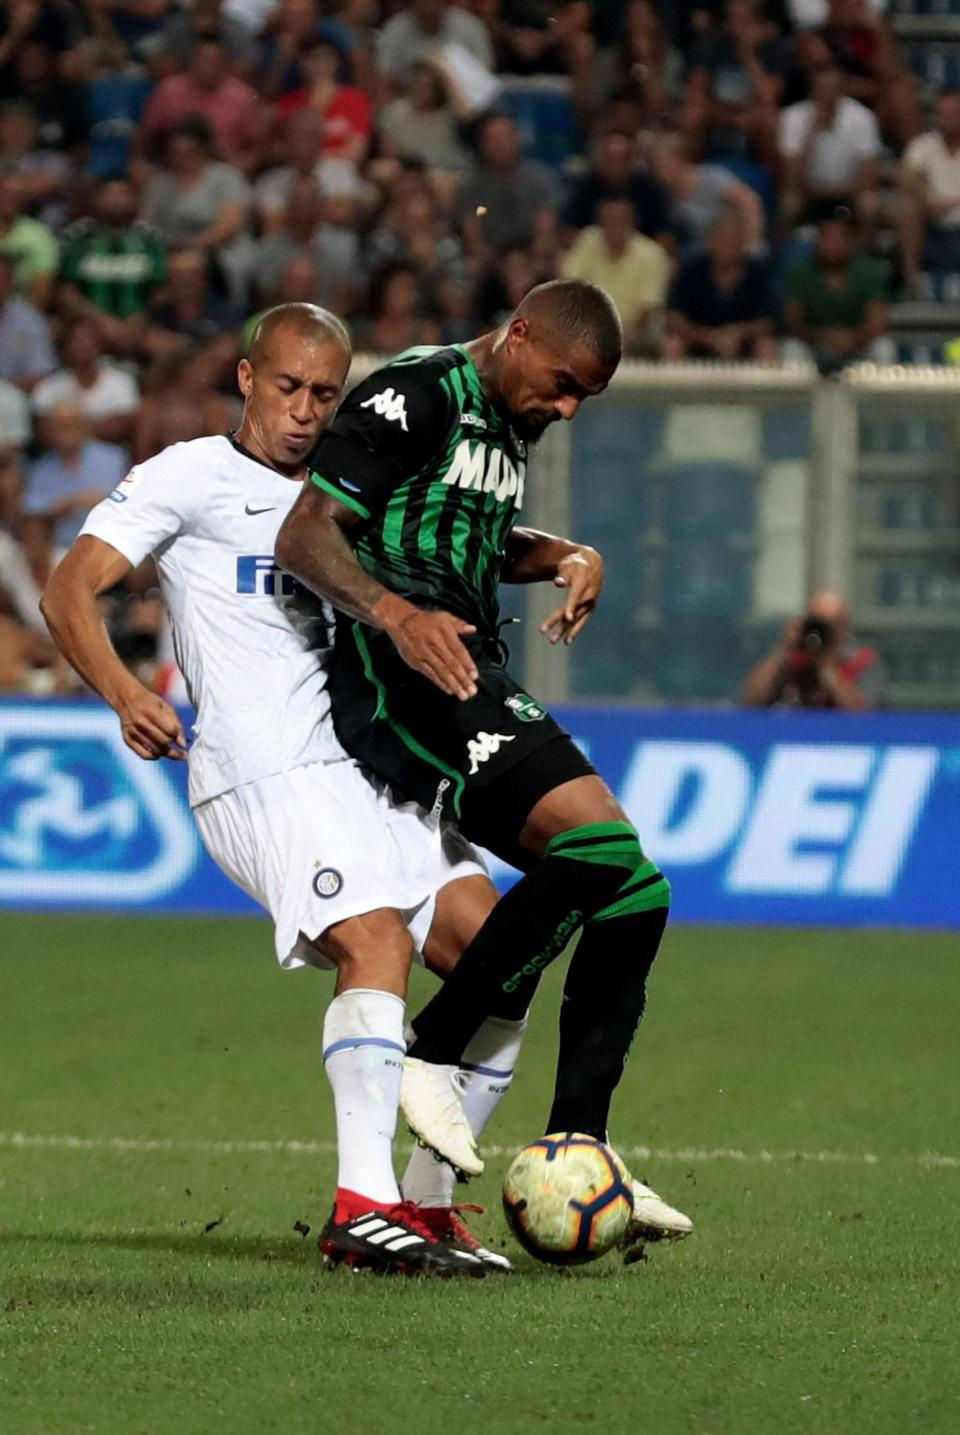 Sassuolo's Kevin Prince Boateng, right, is challenged by Inter's Miranda during the Serie A soccer match between Sassuolo and Inter Milan at the Mapei Stadium in Reggio Emilia, Italy, Sunday, Aug. 19, 2018. (Serena Campanini/ANSA via AP)